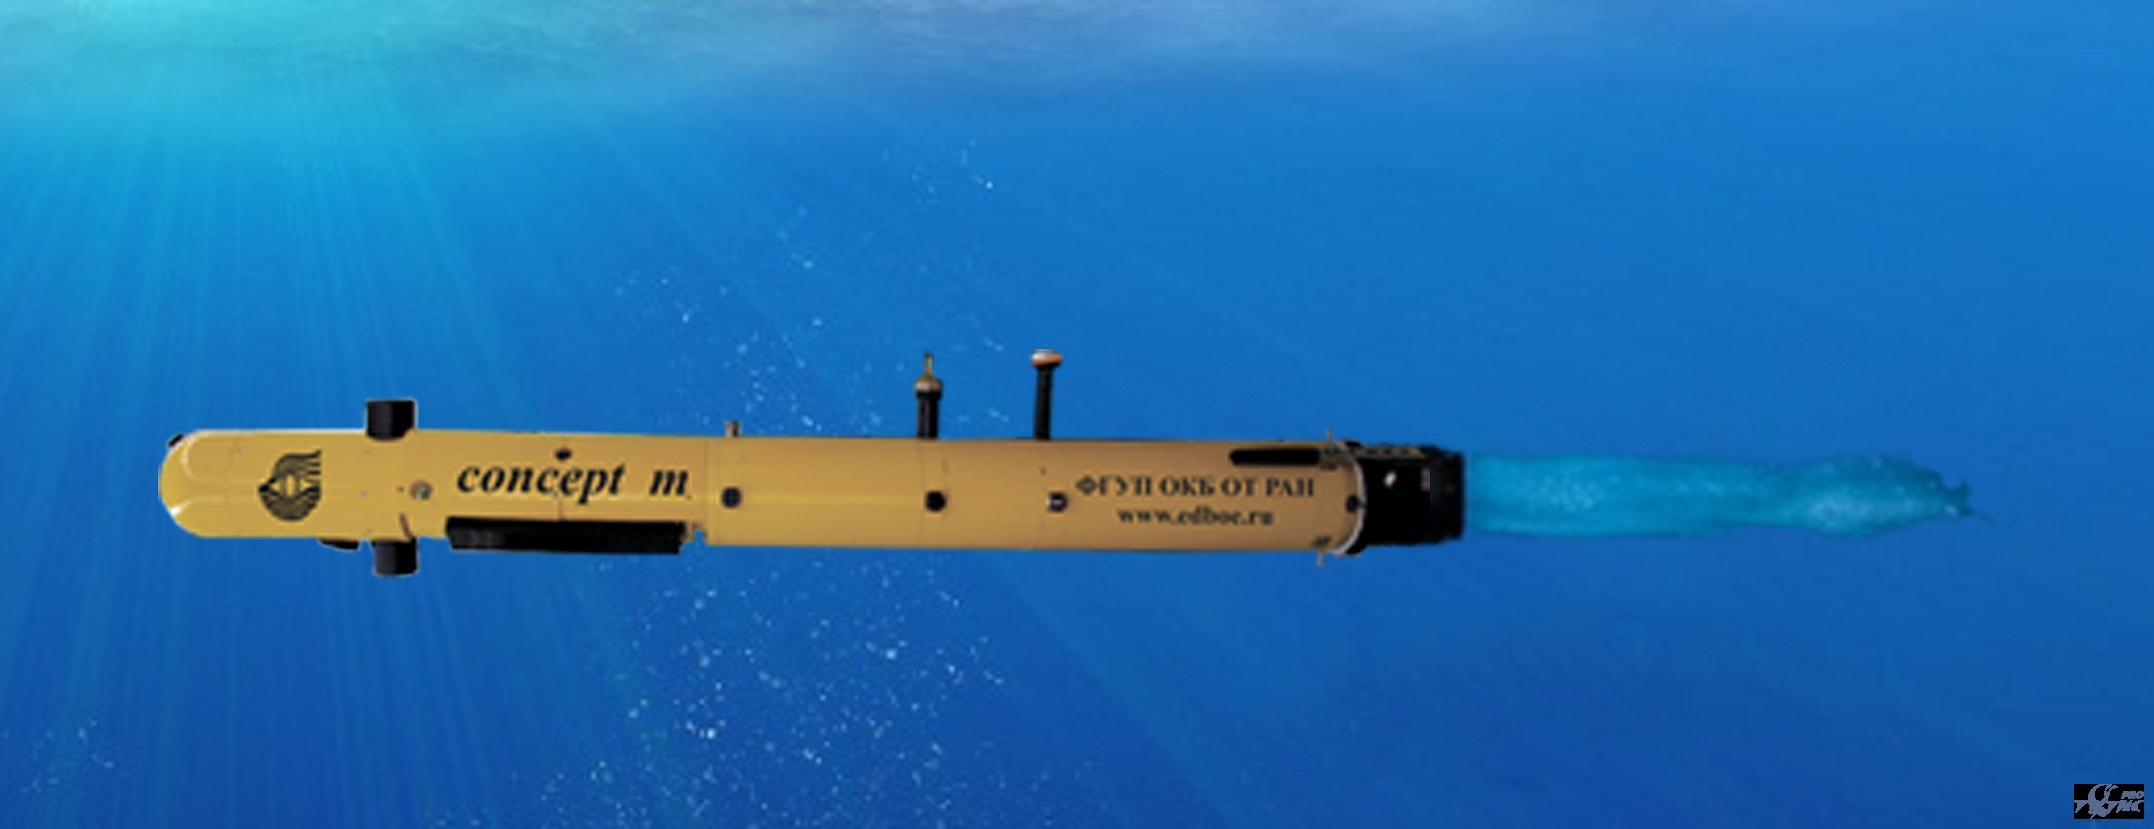 Underwater Drones of the Russian Navy Concept%20m%20(2)